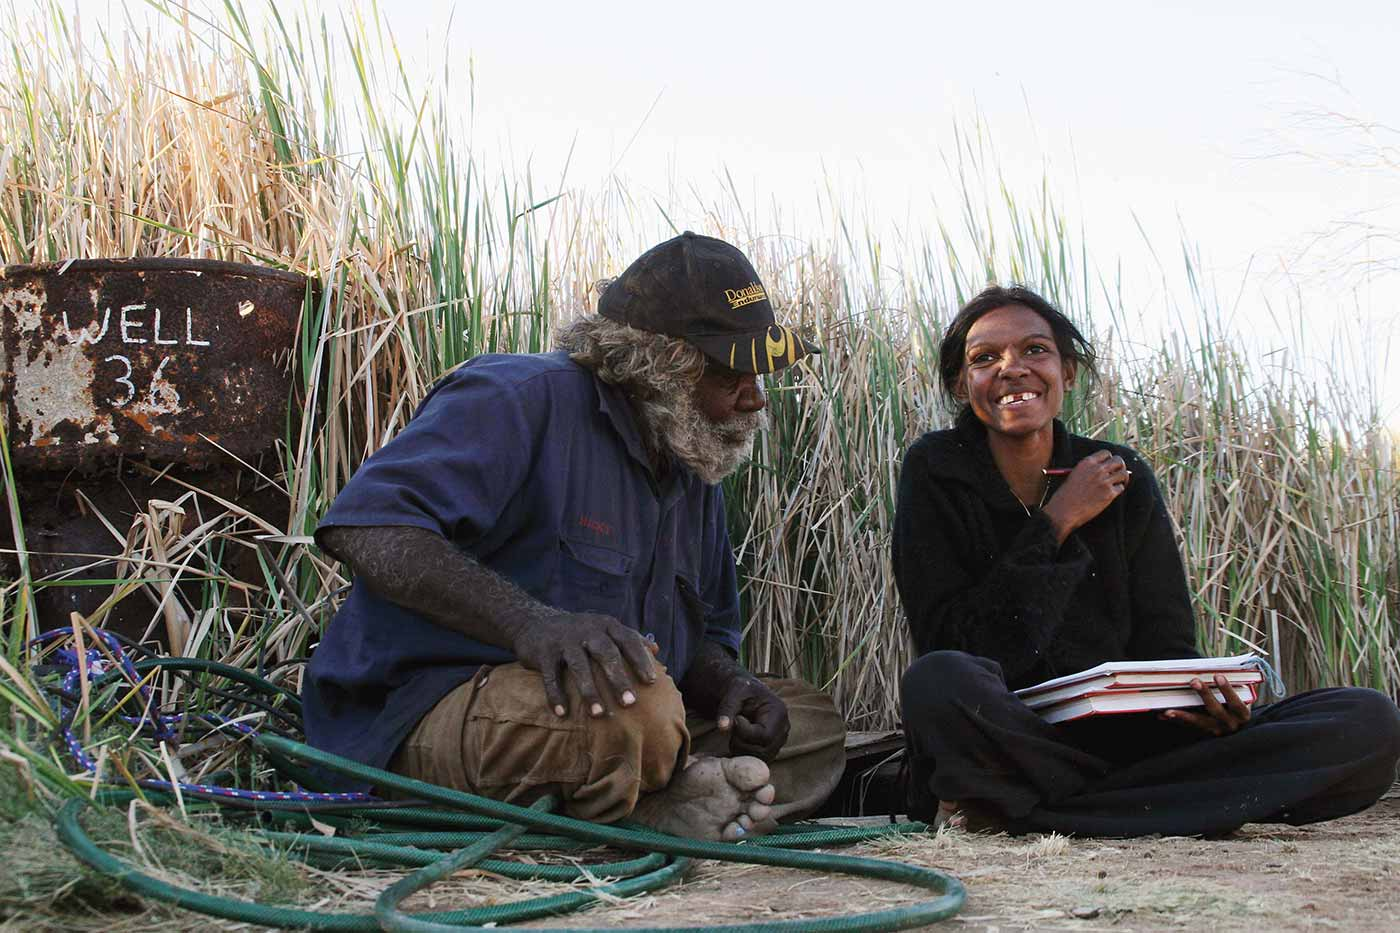 Colour photo of a man and woman sitting on the ground in discussion over plans.